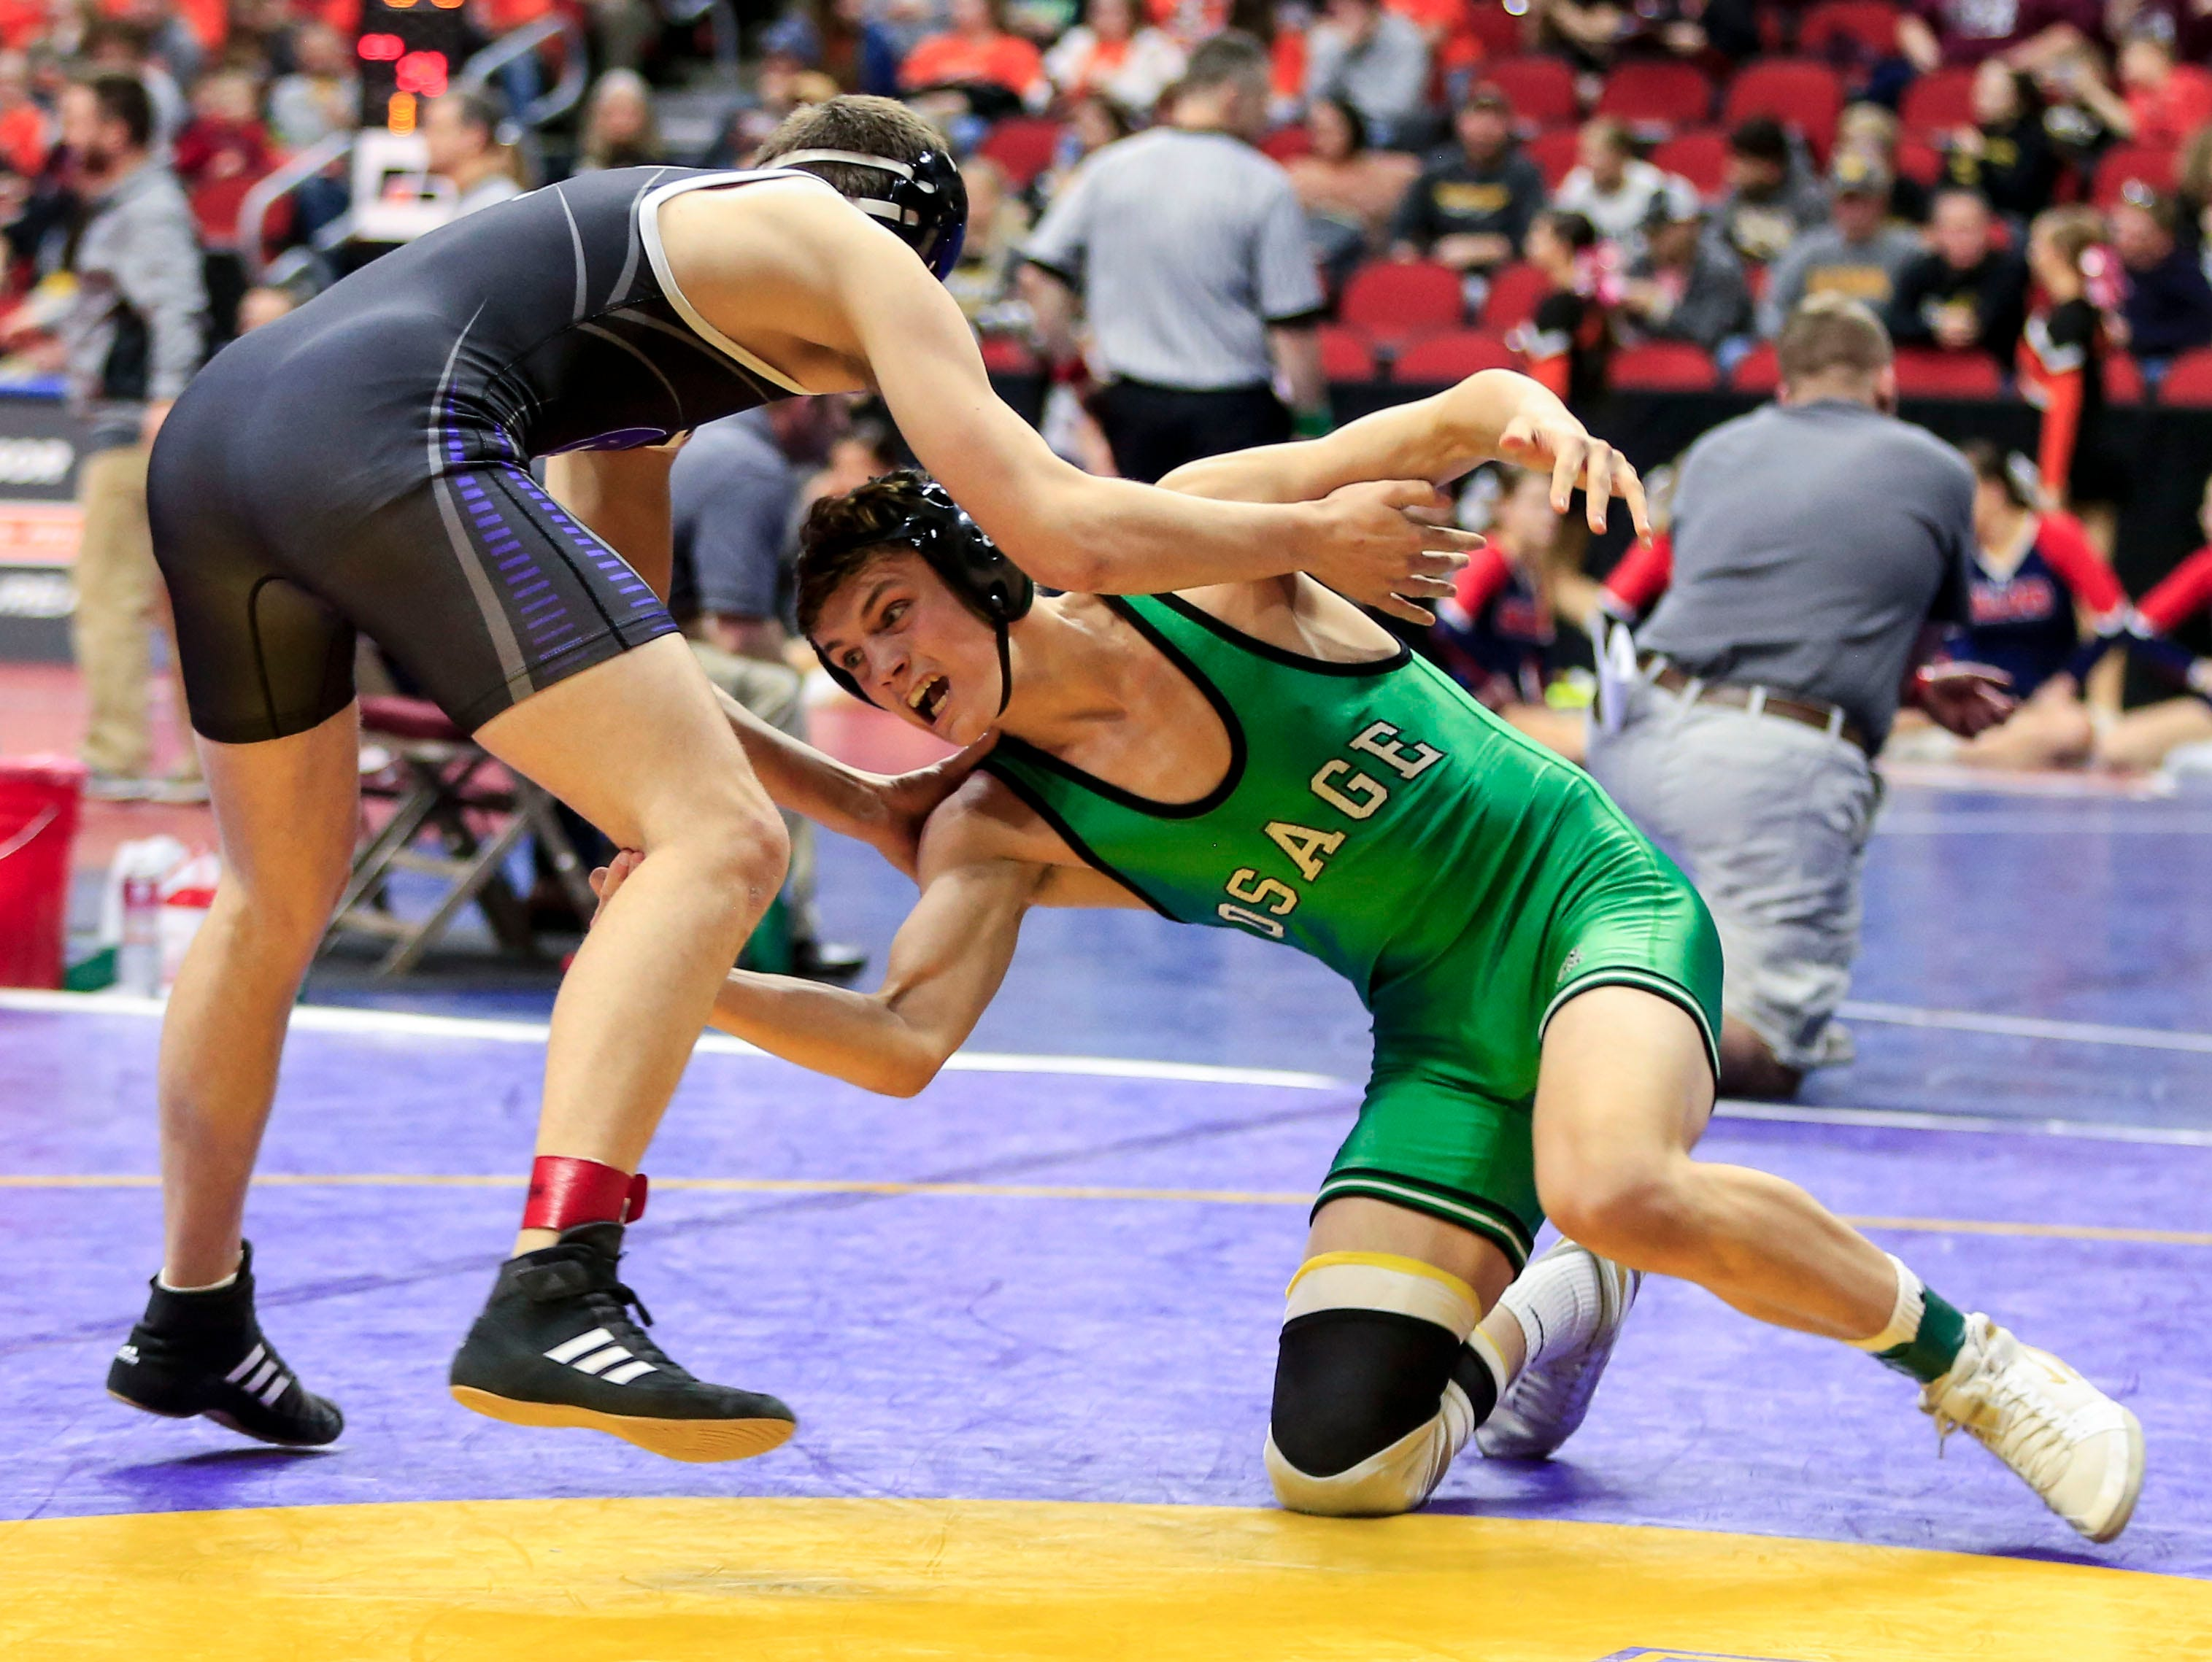 Spencer Mooberry of Osage defeats Bryan Graves of Oelwein during a 2A 170 Lb match at the state wrestling tournament Thursday, Feb. 14, 2019.